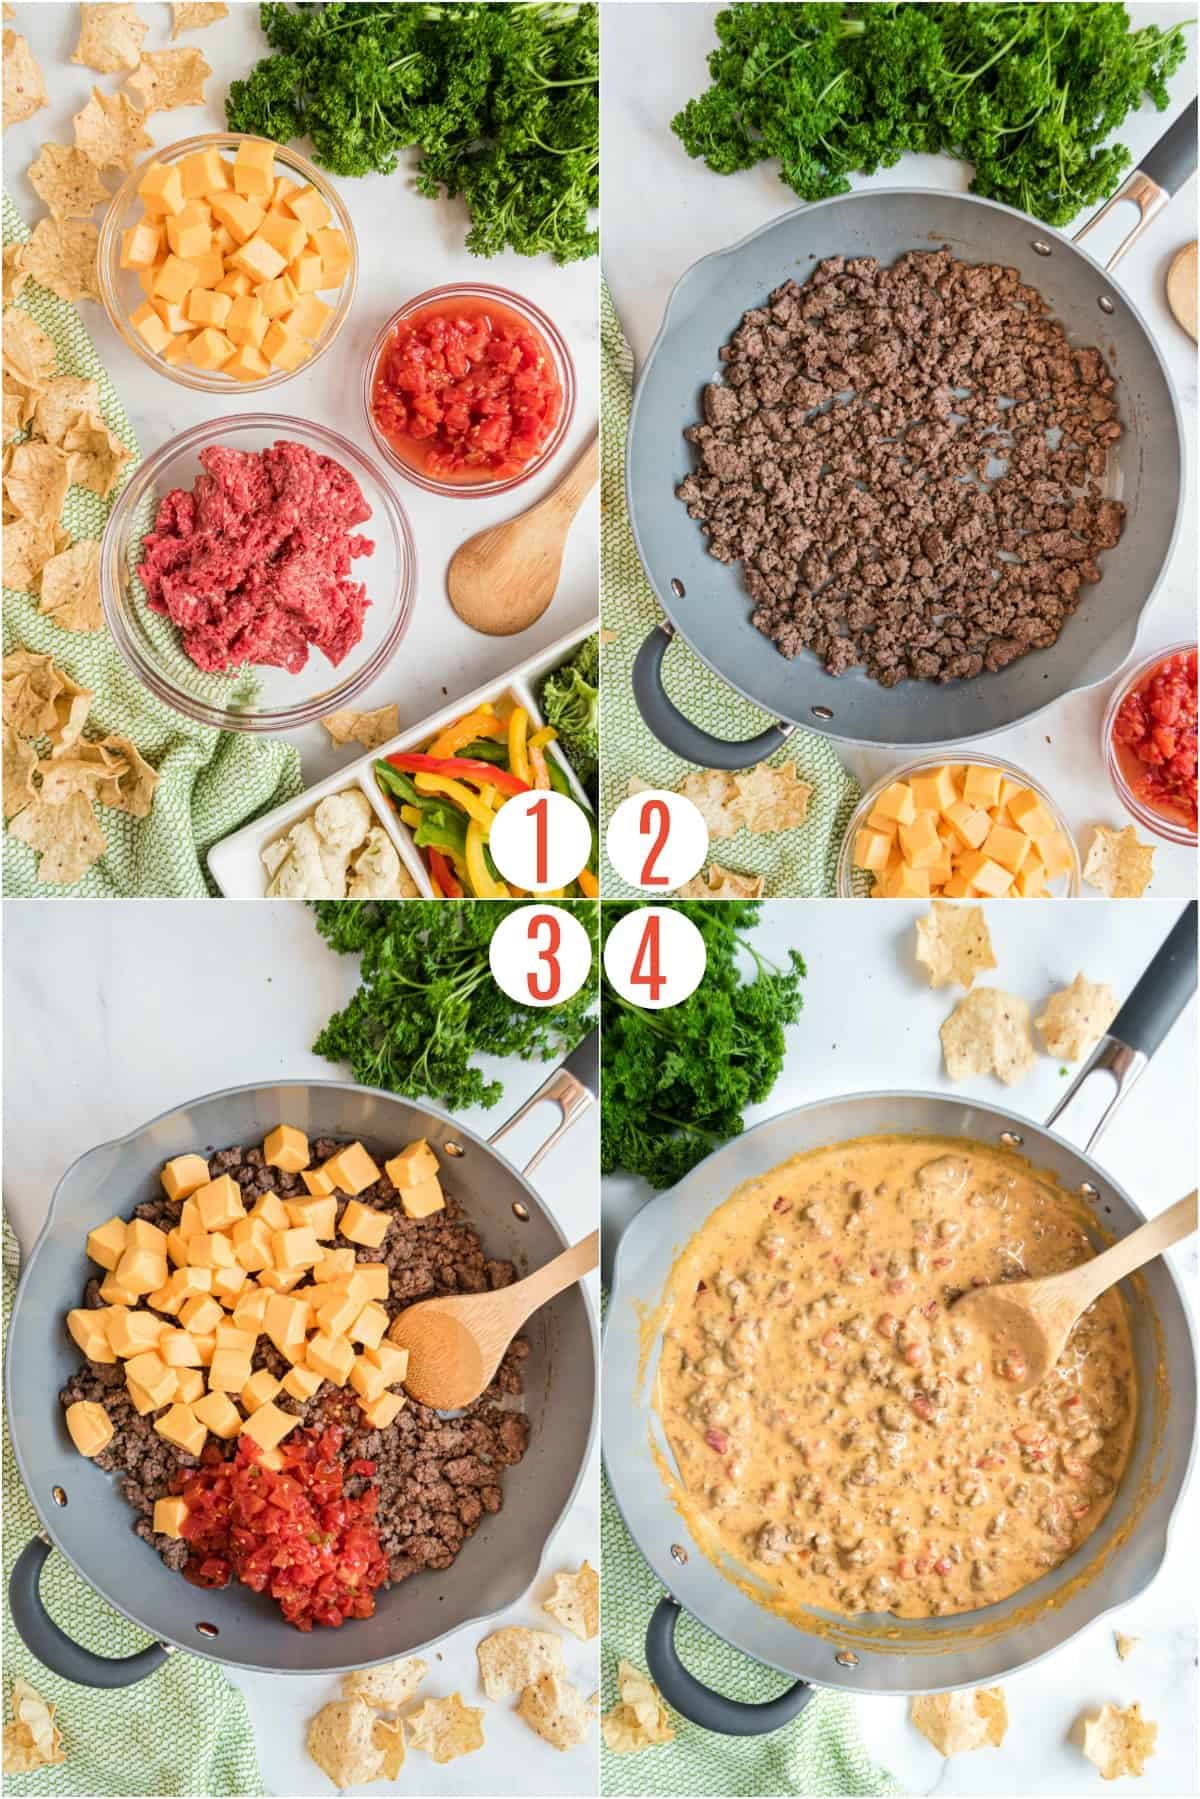 Step by step photos showing how to make rotel dip.